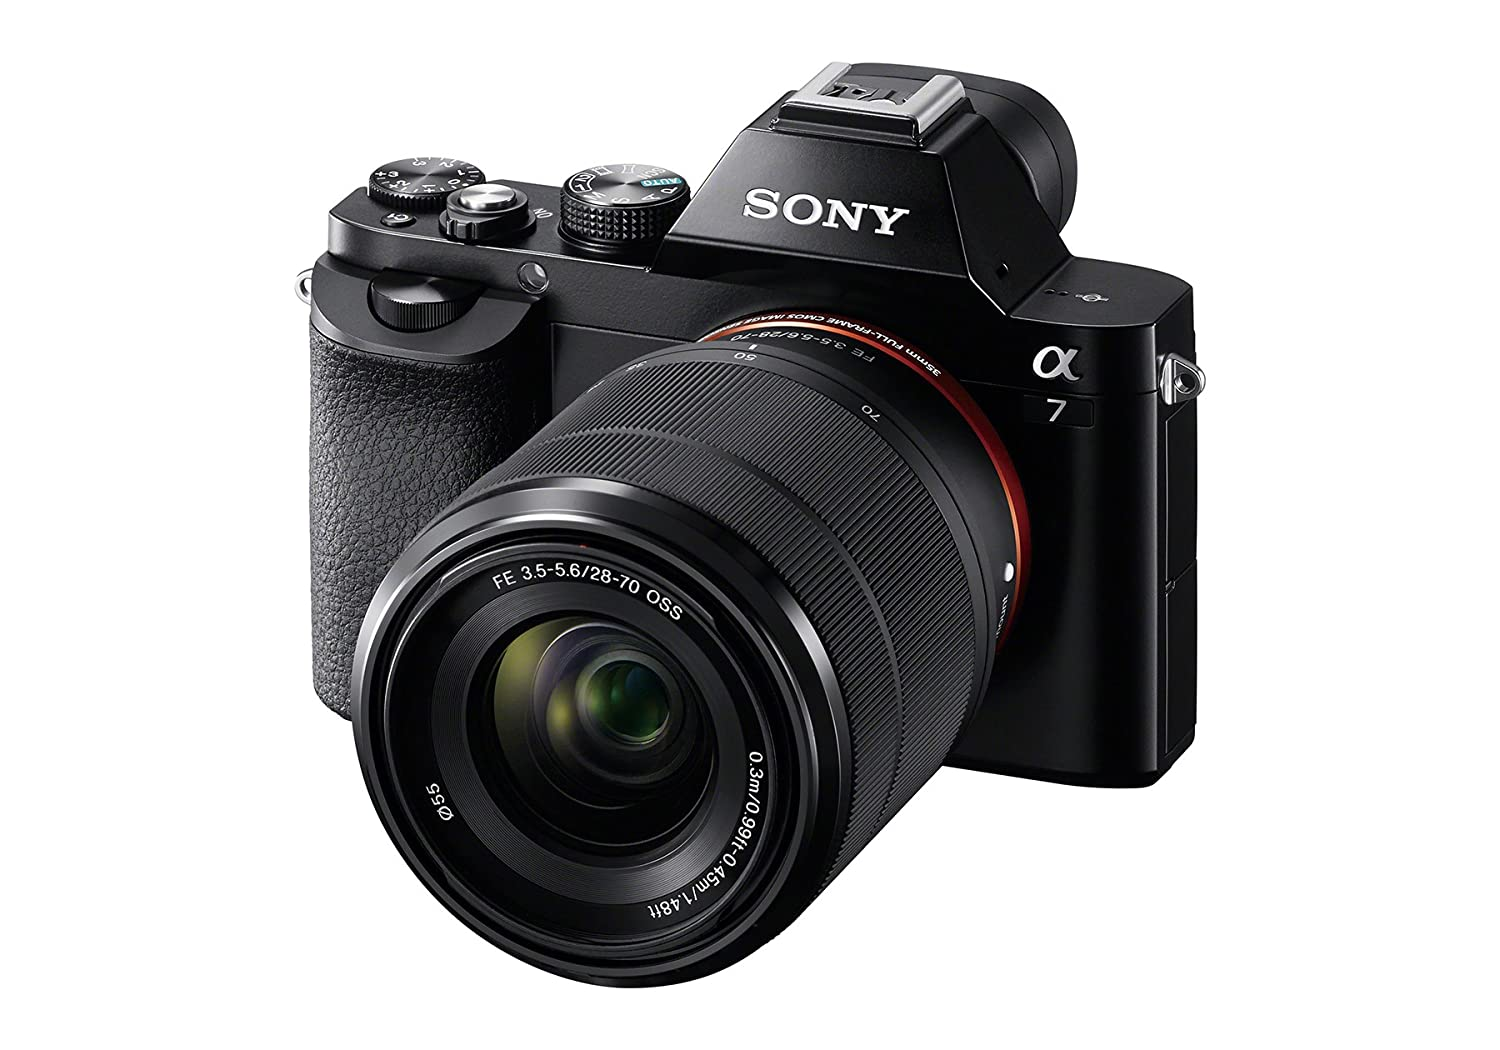 sony a7 kit 28-70mm lens